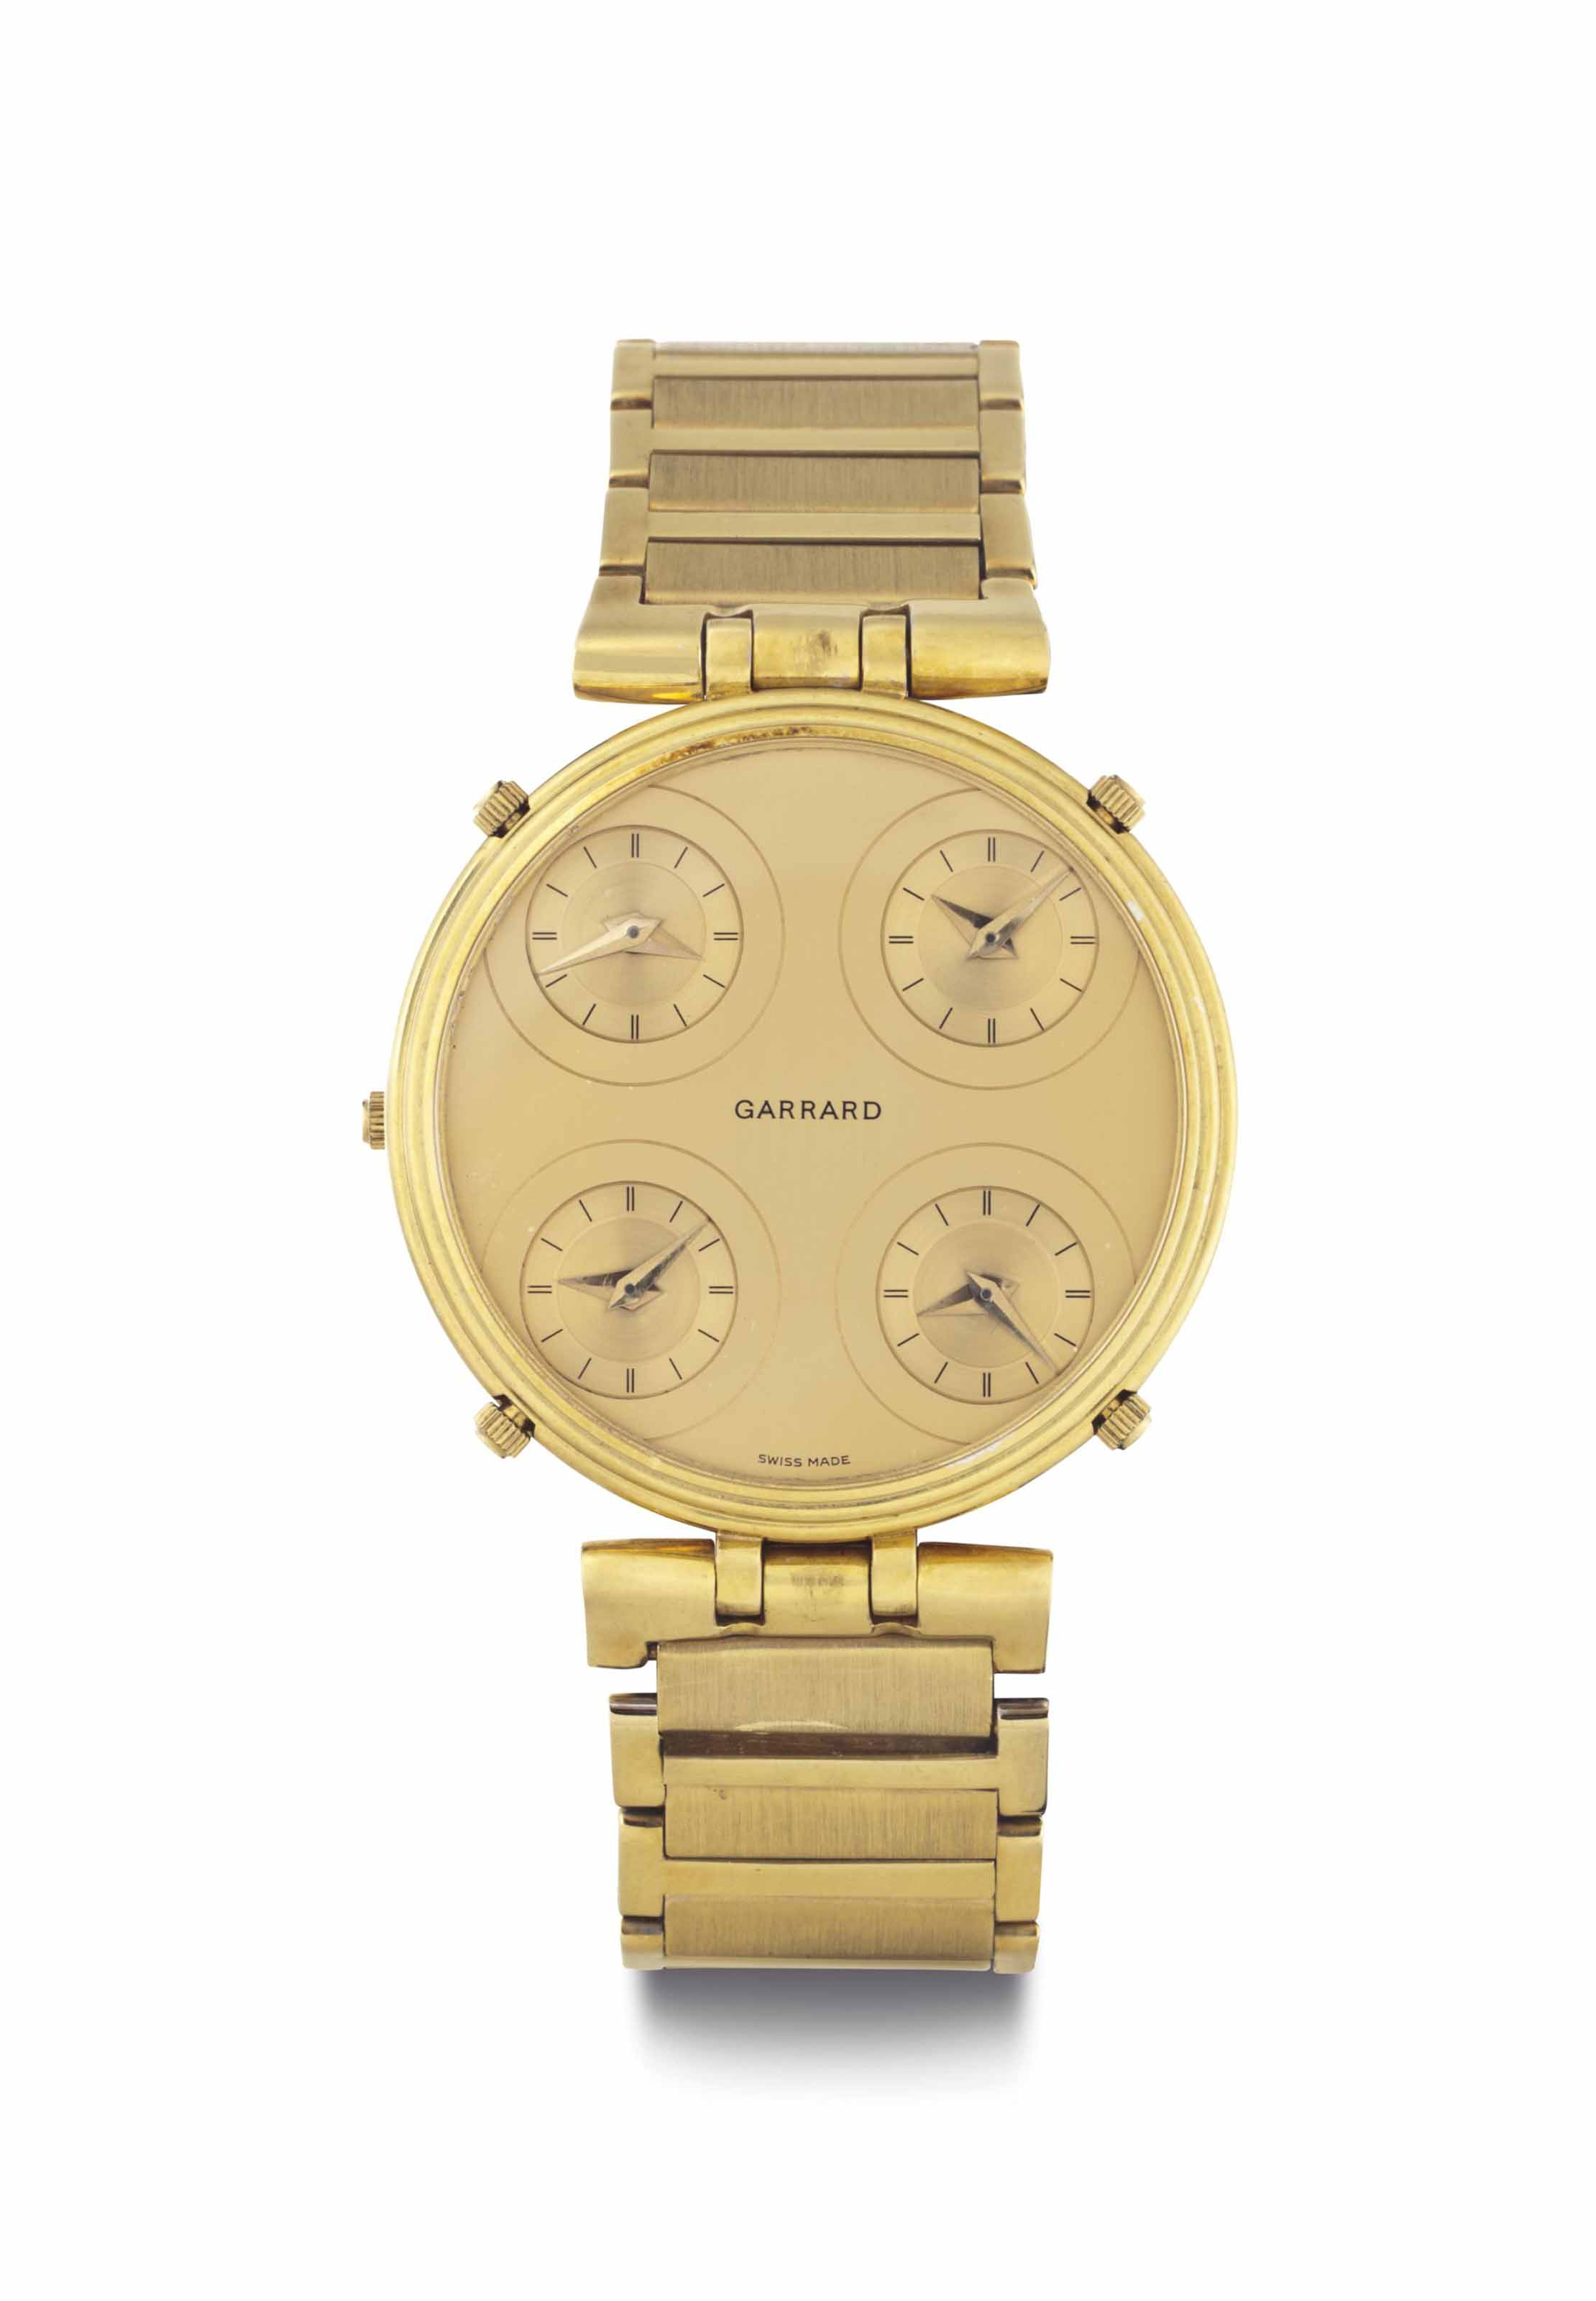 Sarcar & Garrard. A Two-Color 18k Gold Reversible Bracelet Wristwatch with Five Time Zones